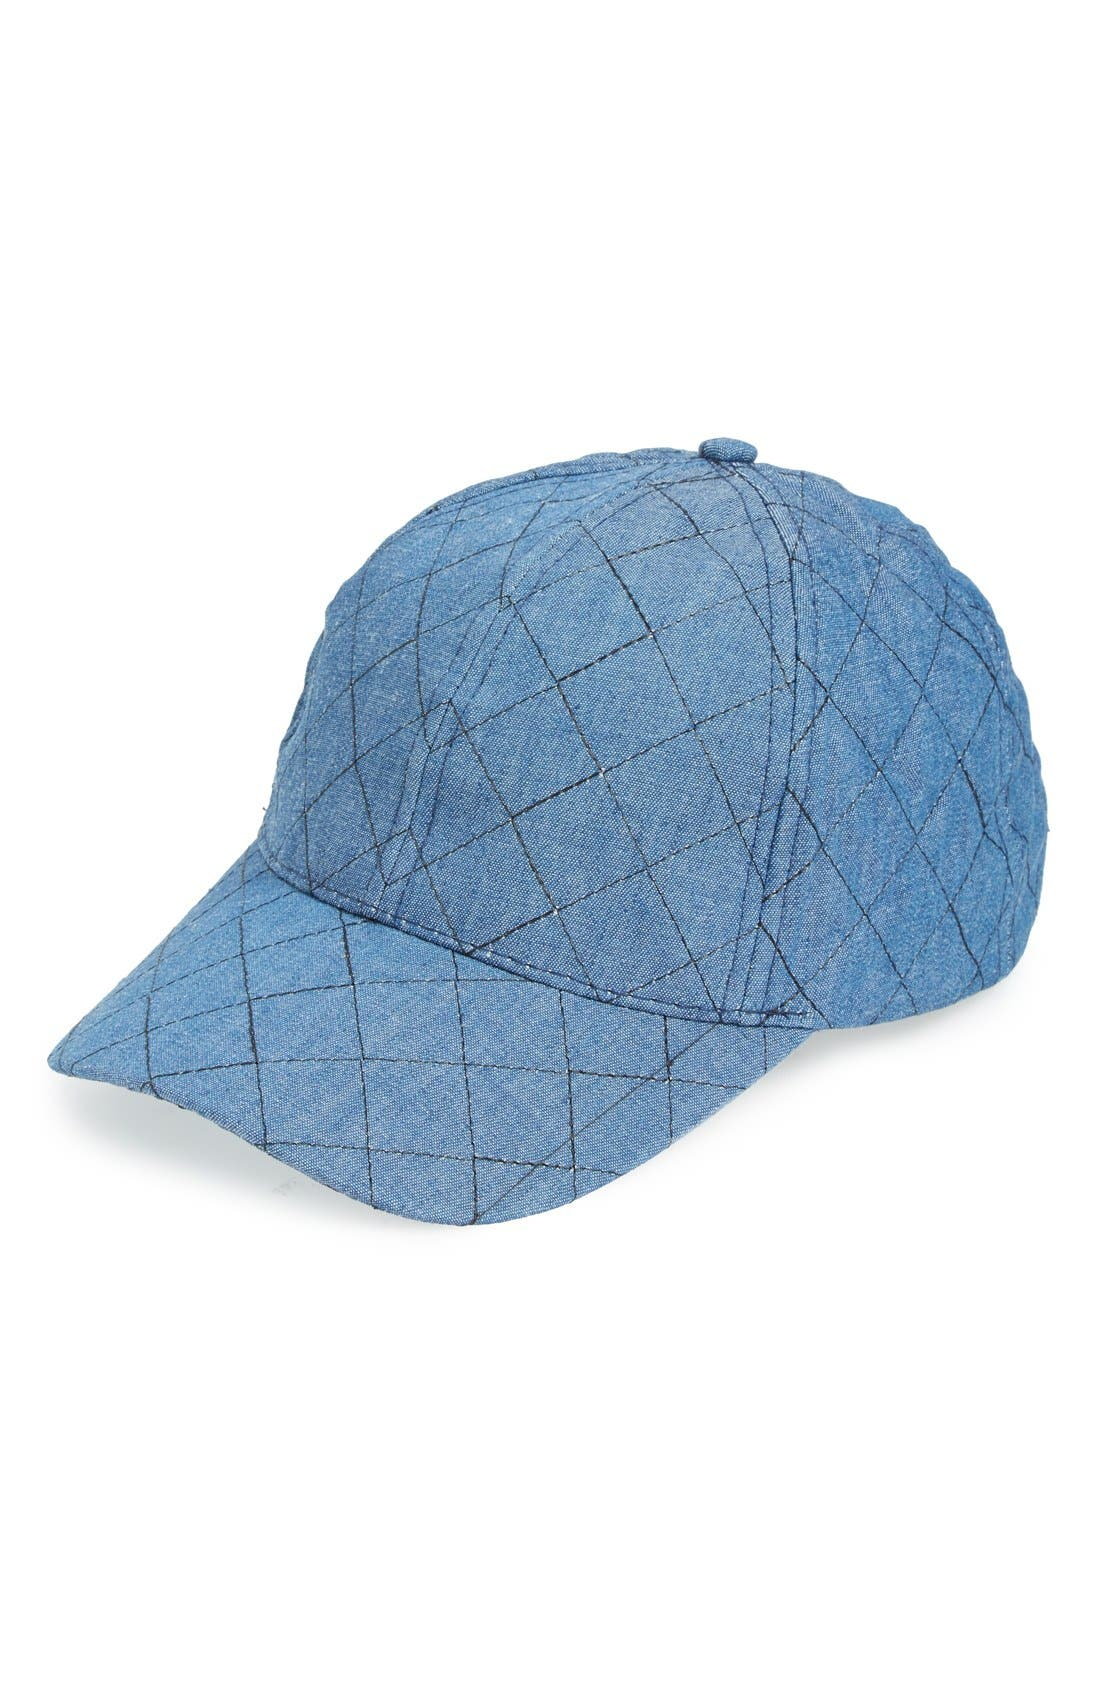 Main Image - Amici Accessories Quilted Chambray Ball Cap